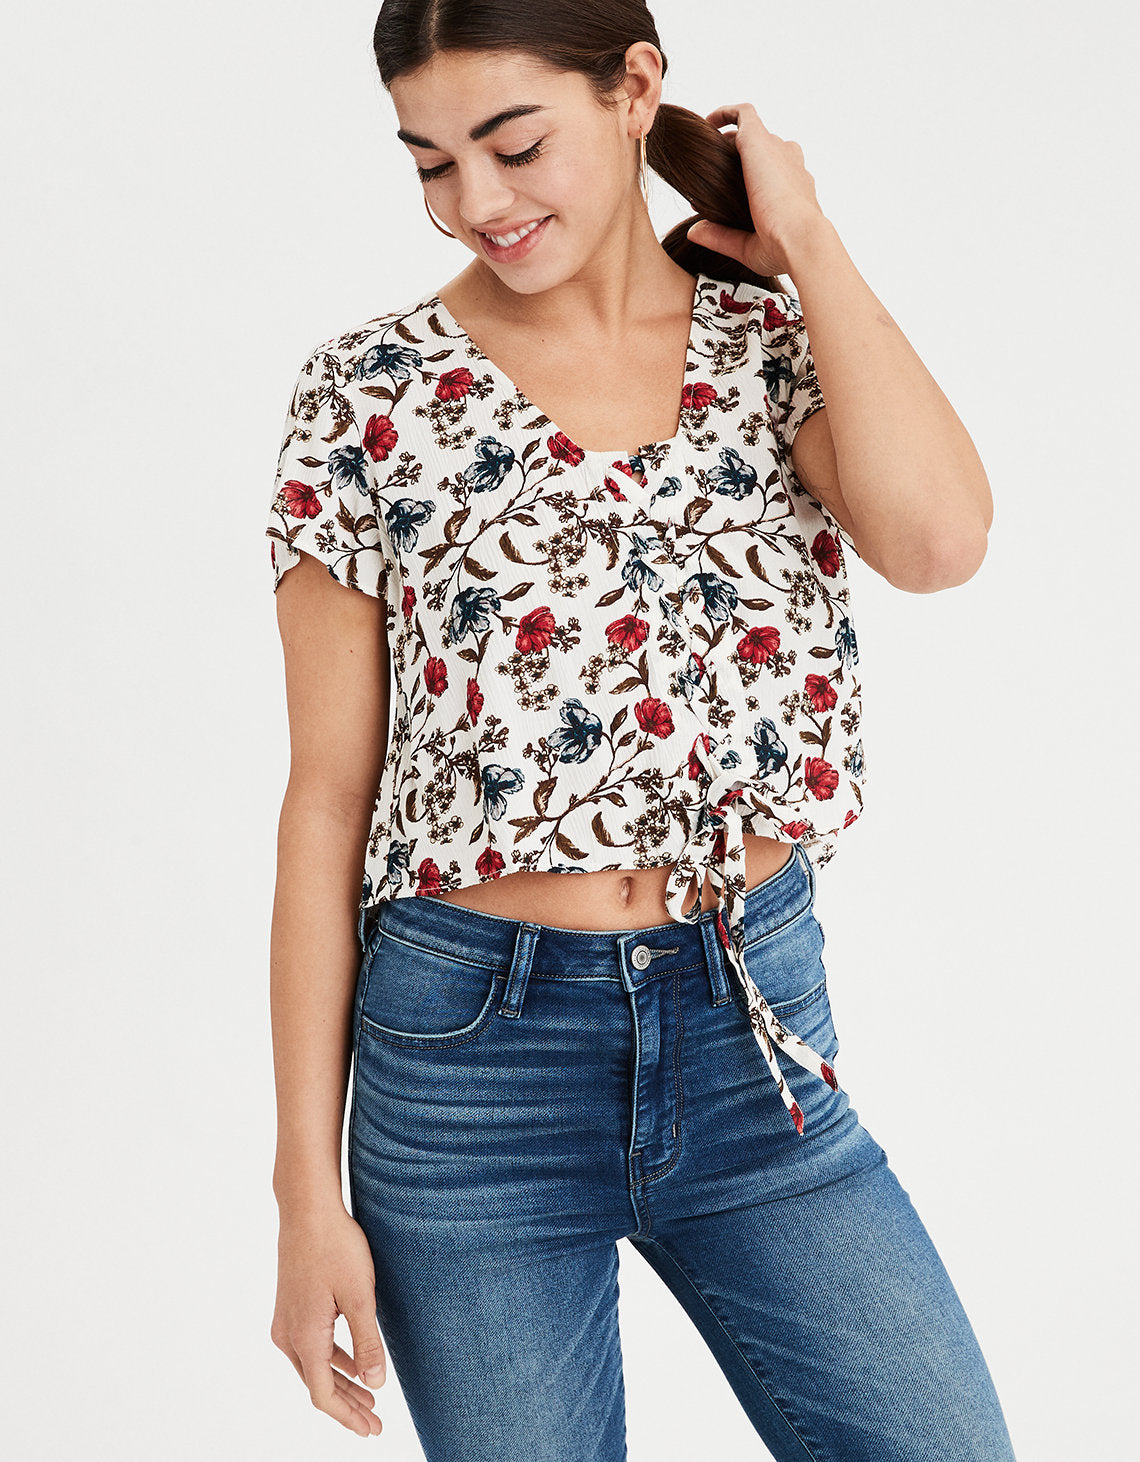 297ff3181cc American Eagle | AE Floral Lace Up Crop Top in Cream | American ...